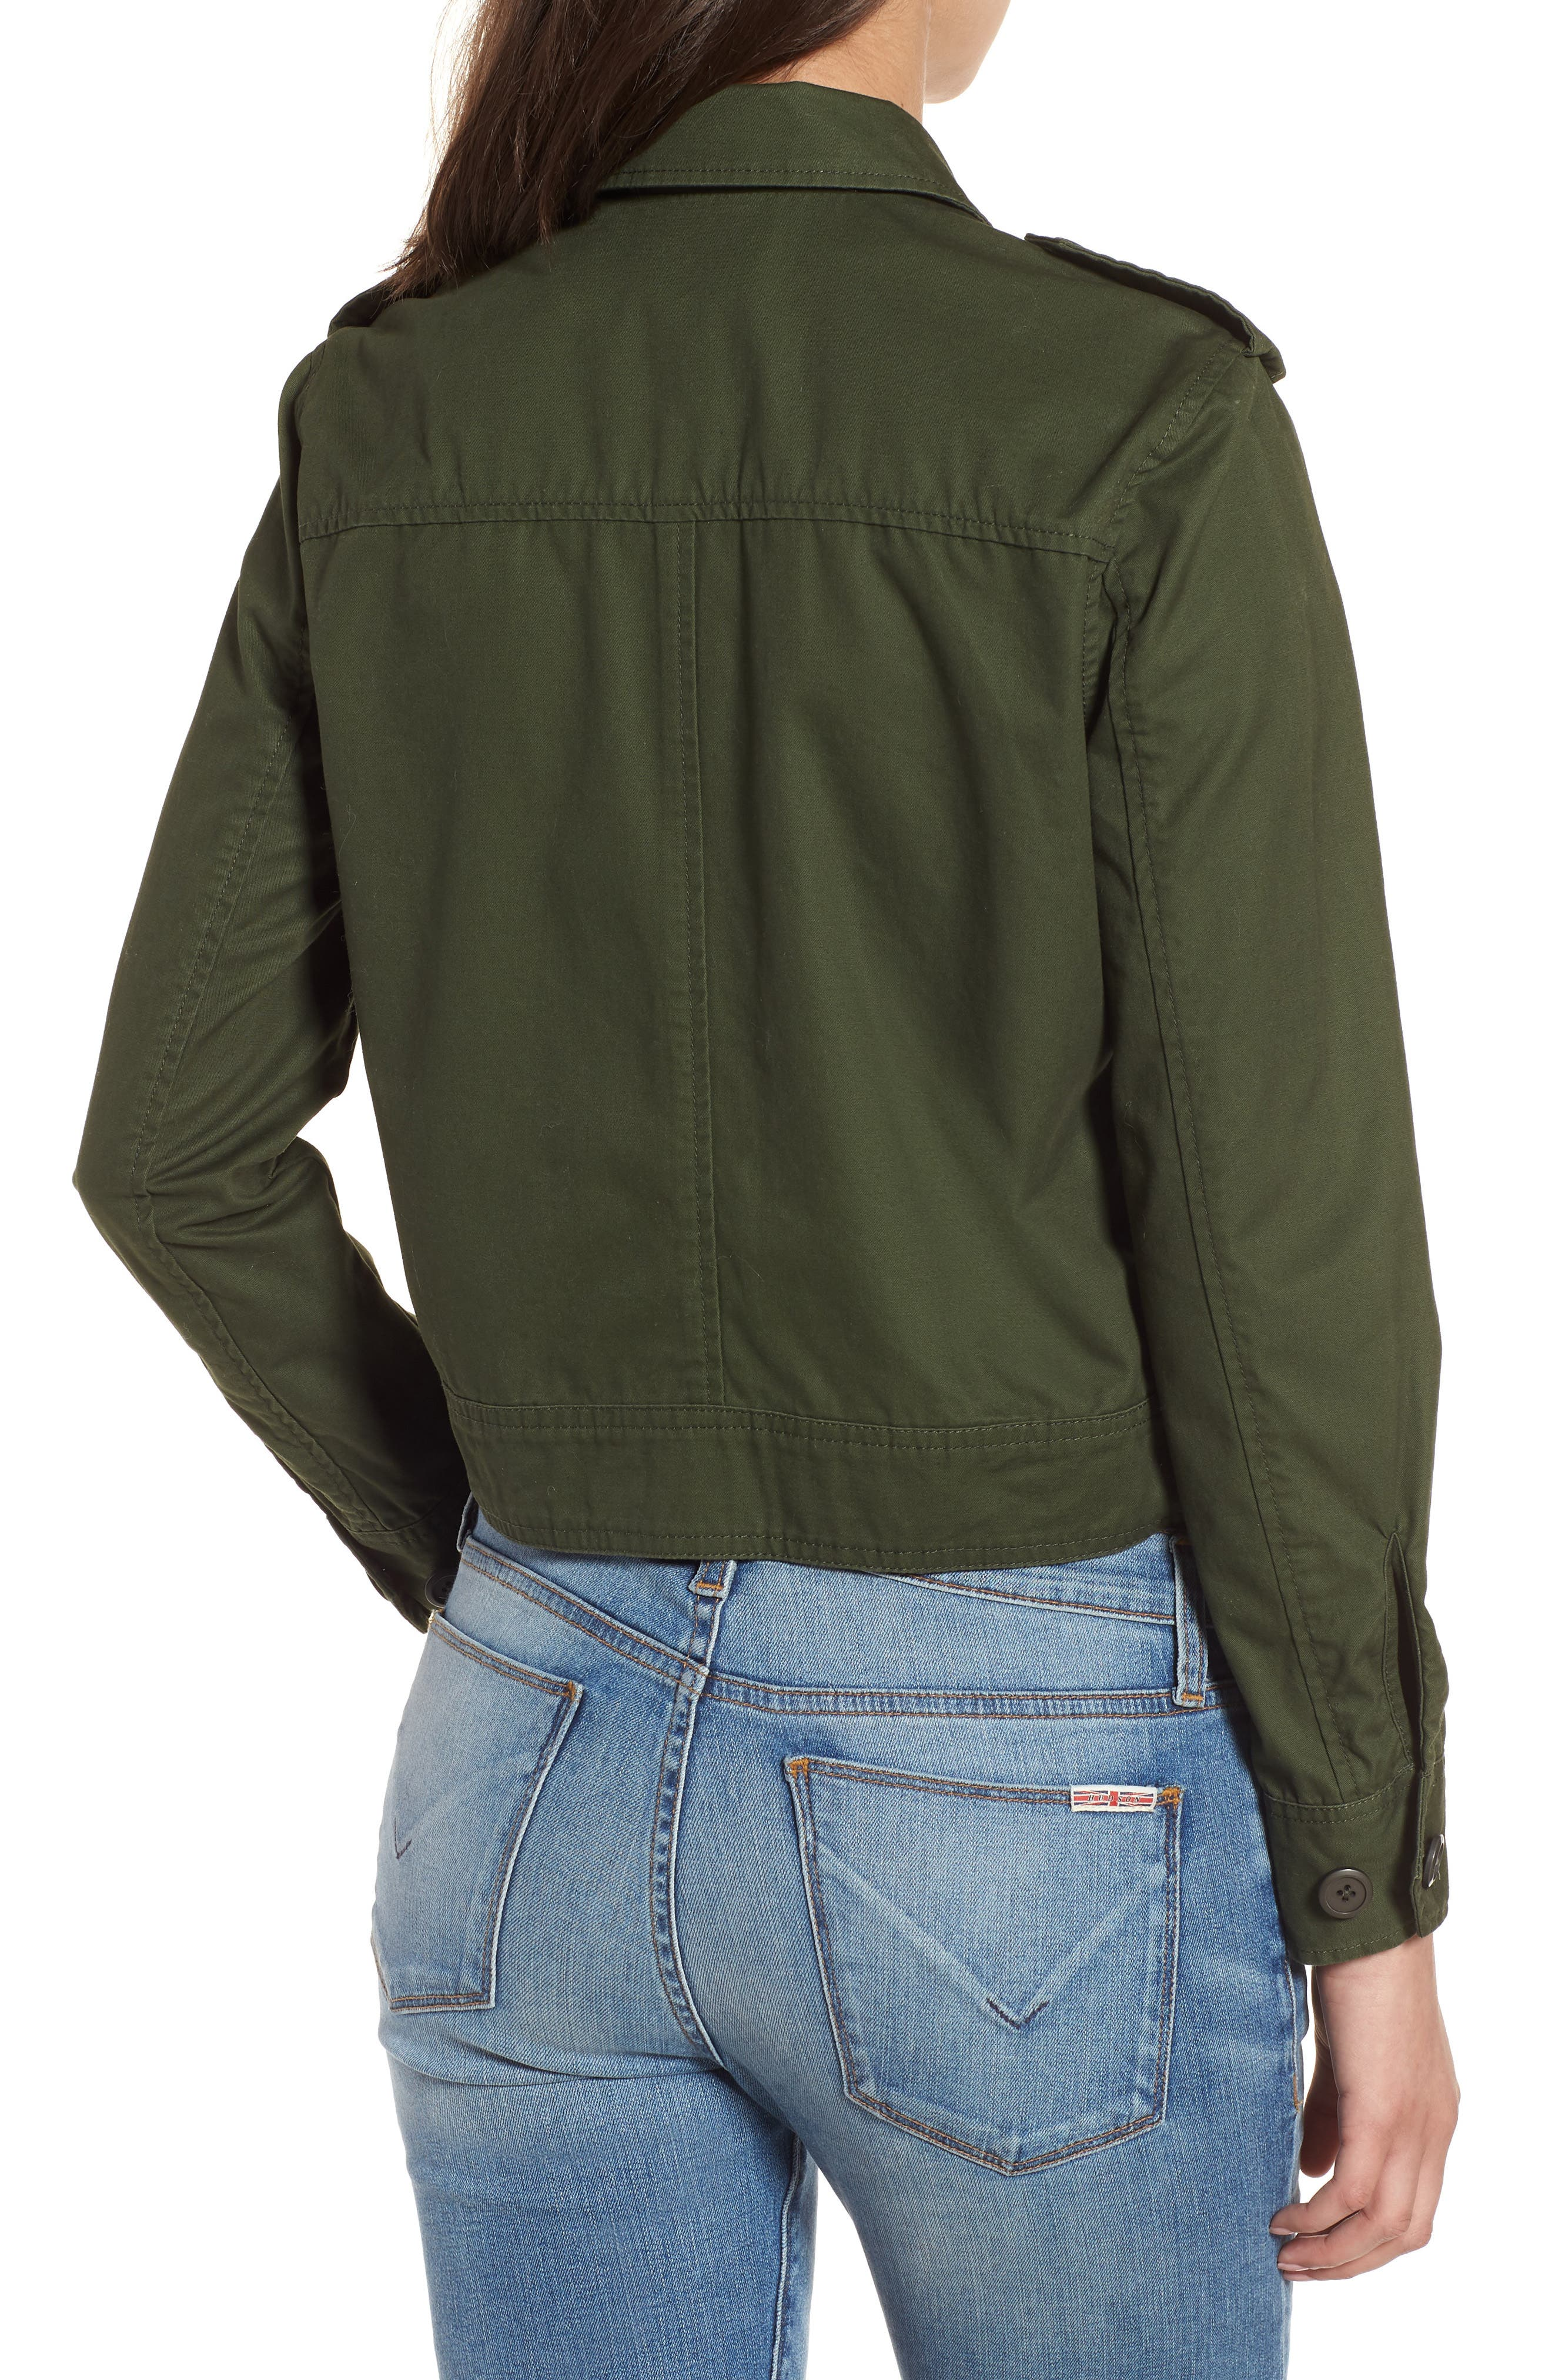 Maddox Cotton Twill Army Jacket,                             Alternate thumbnail 2, color,                             301